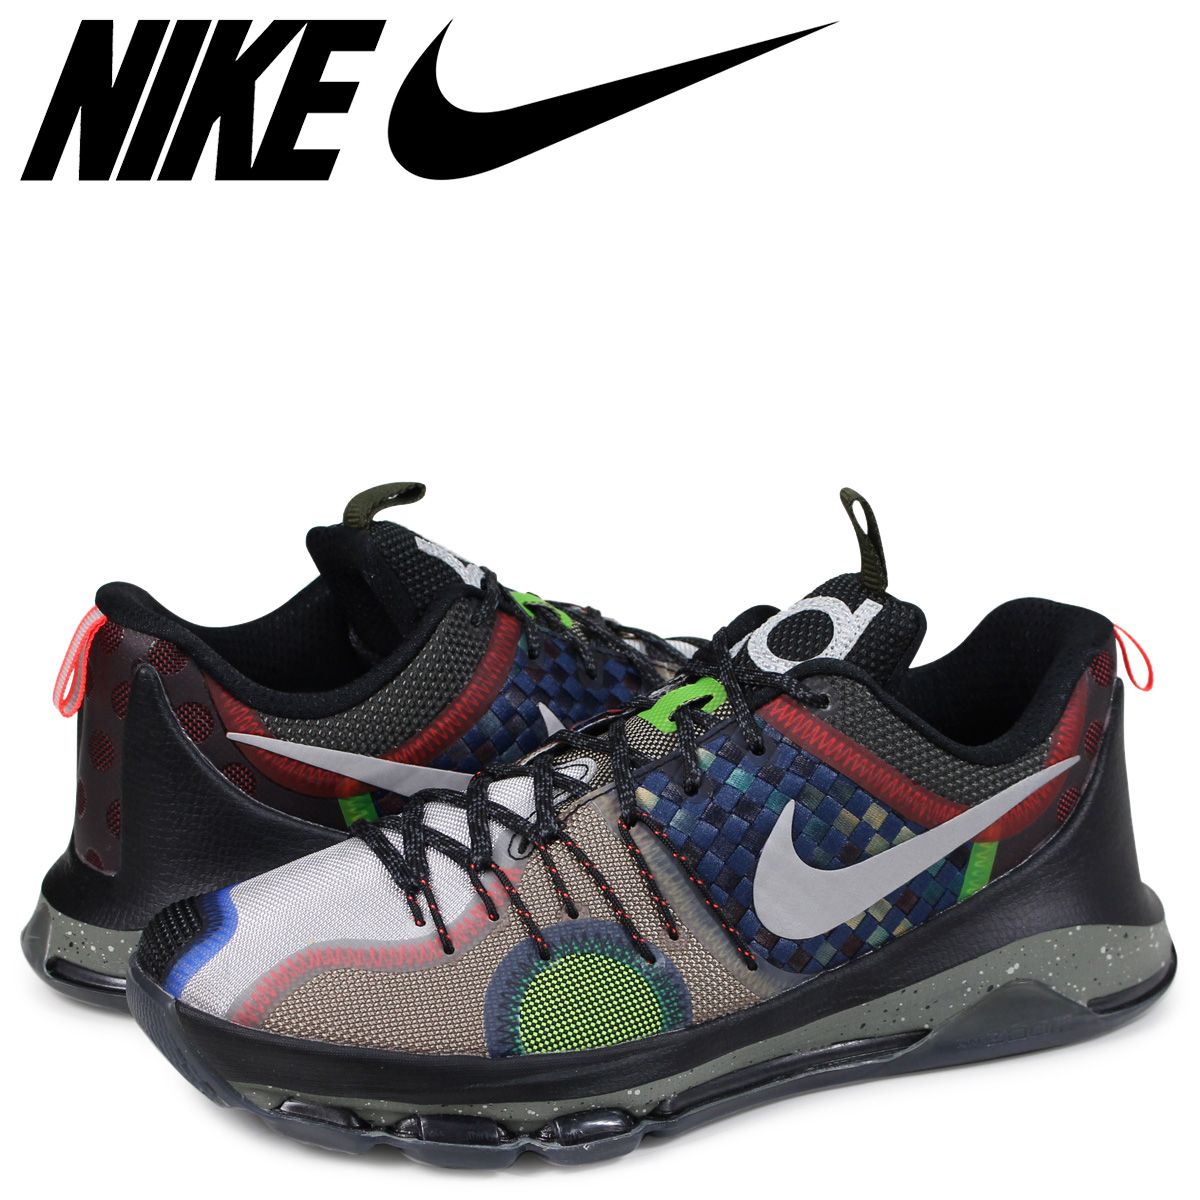 6fcd78913634 Whats up Sports  NIKE SE EP WHAT THE Nike KD 8 sneakers men 845